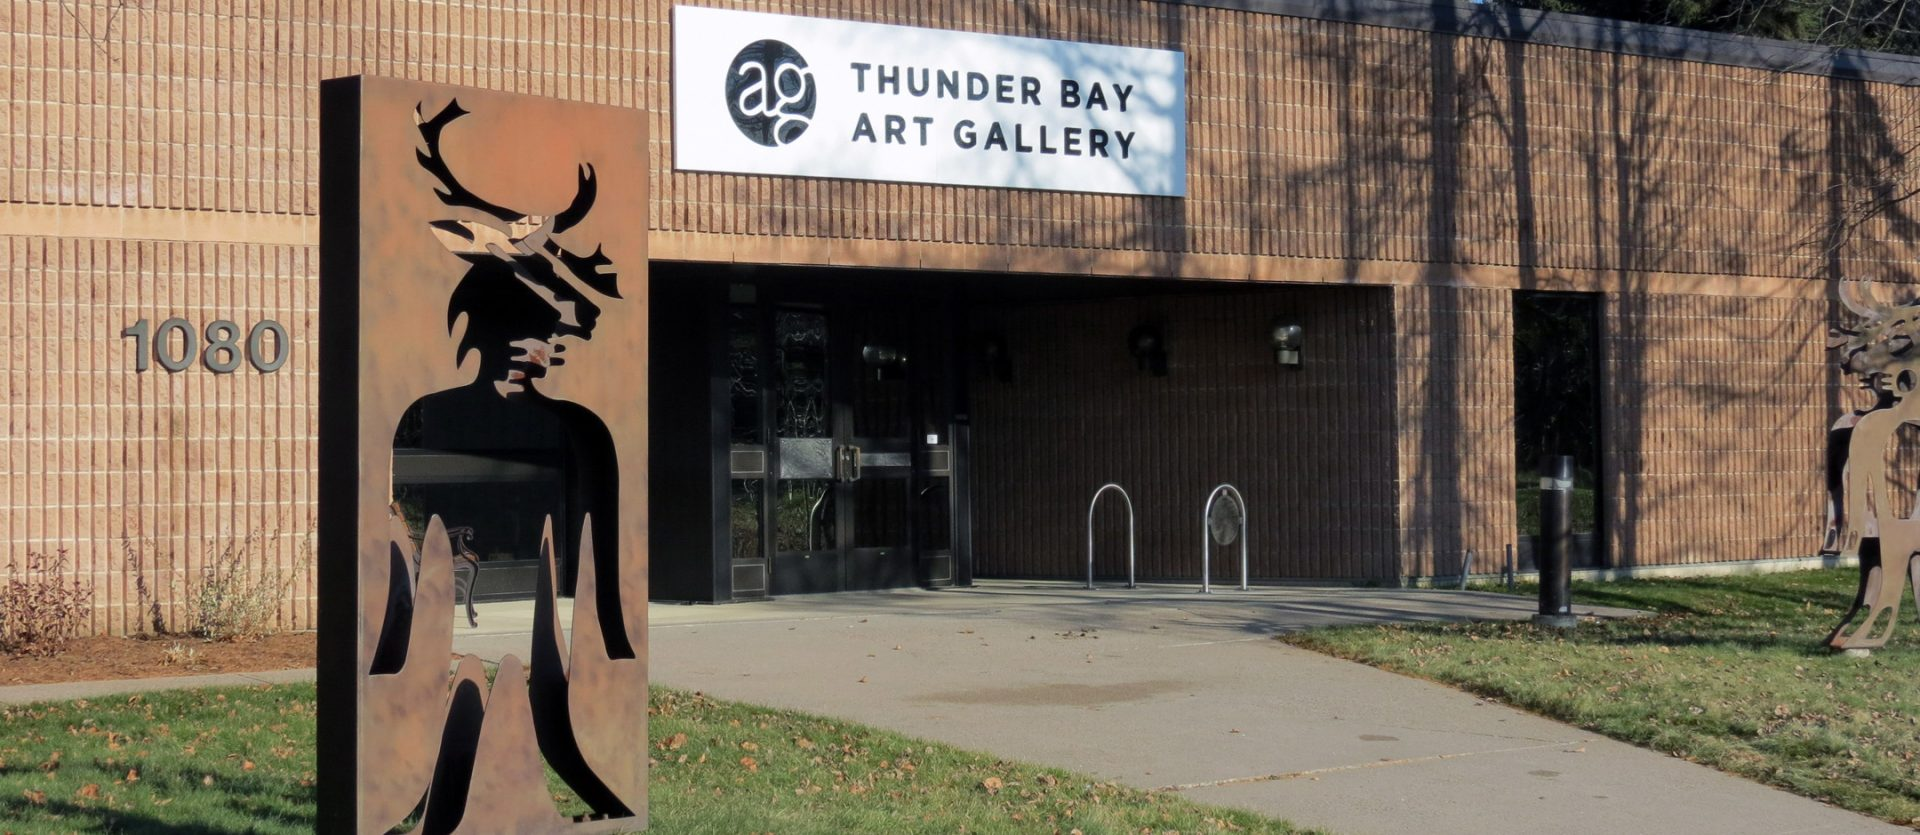 exterior view of thunder bay art gallery